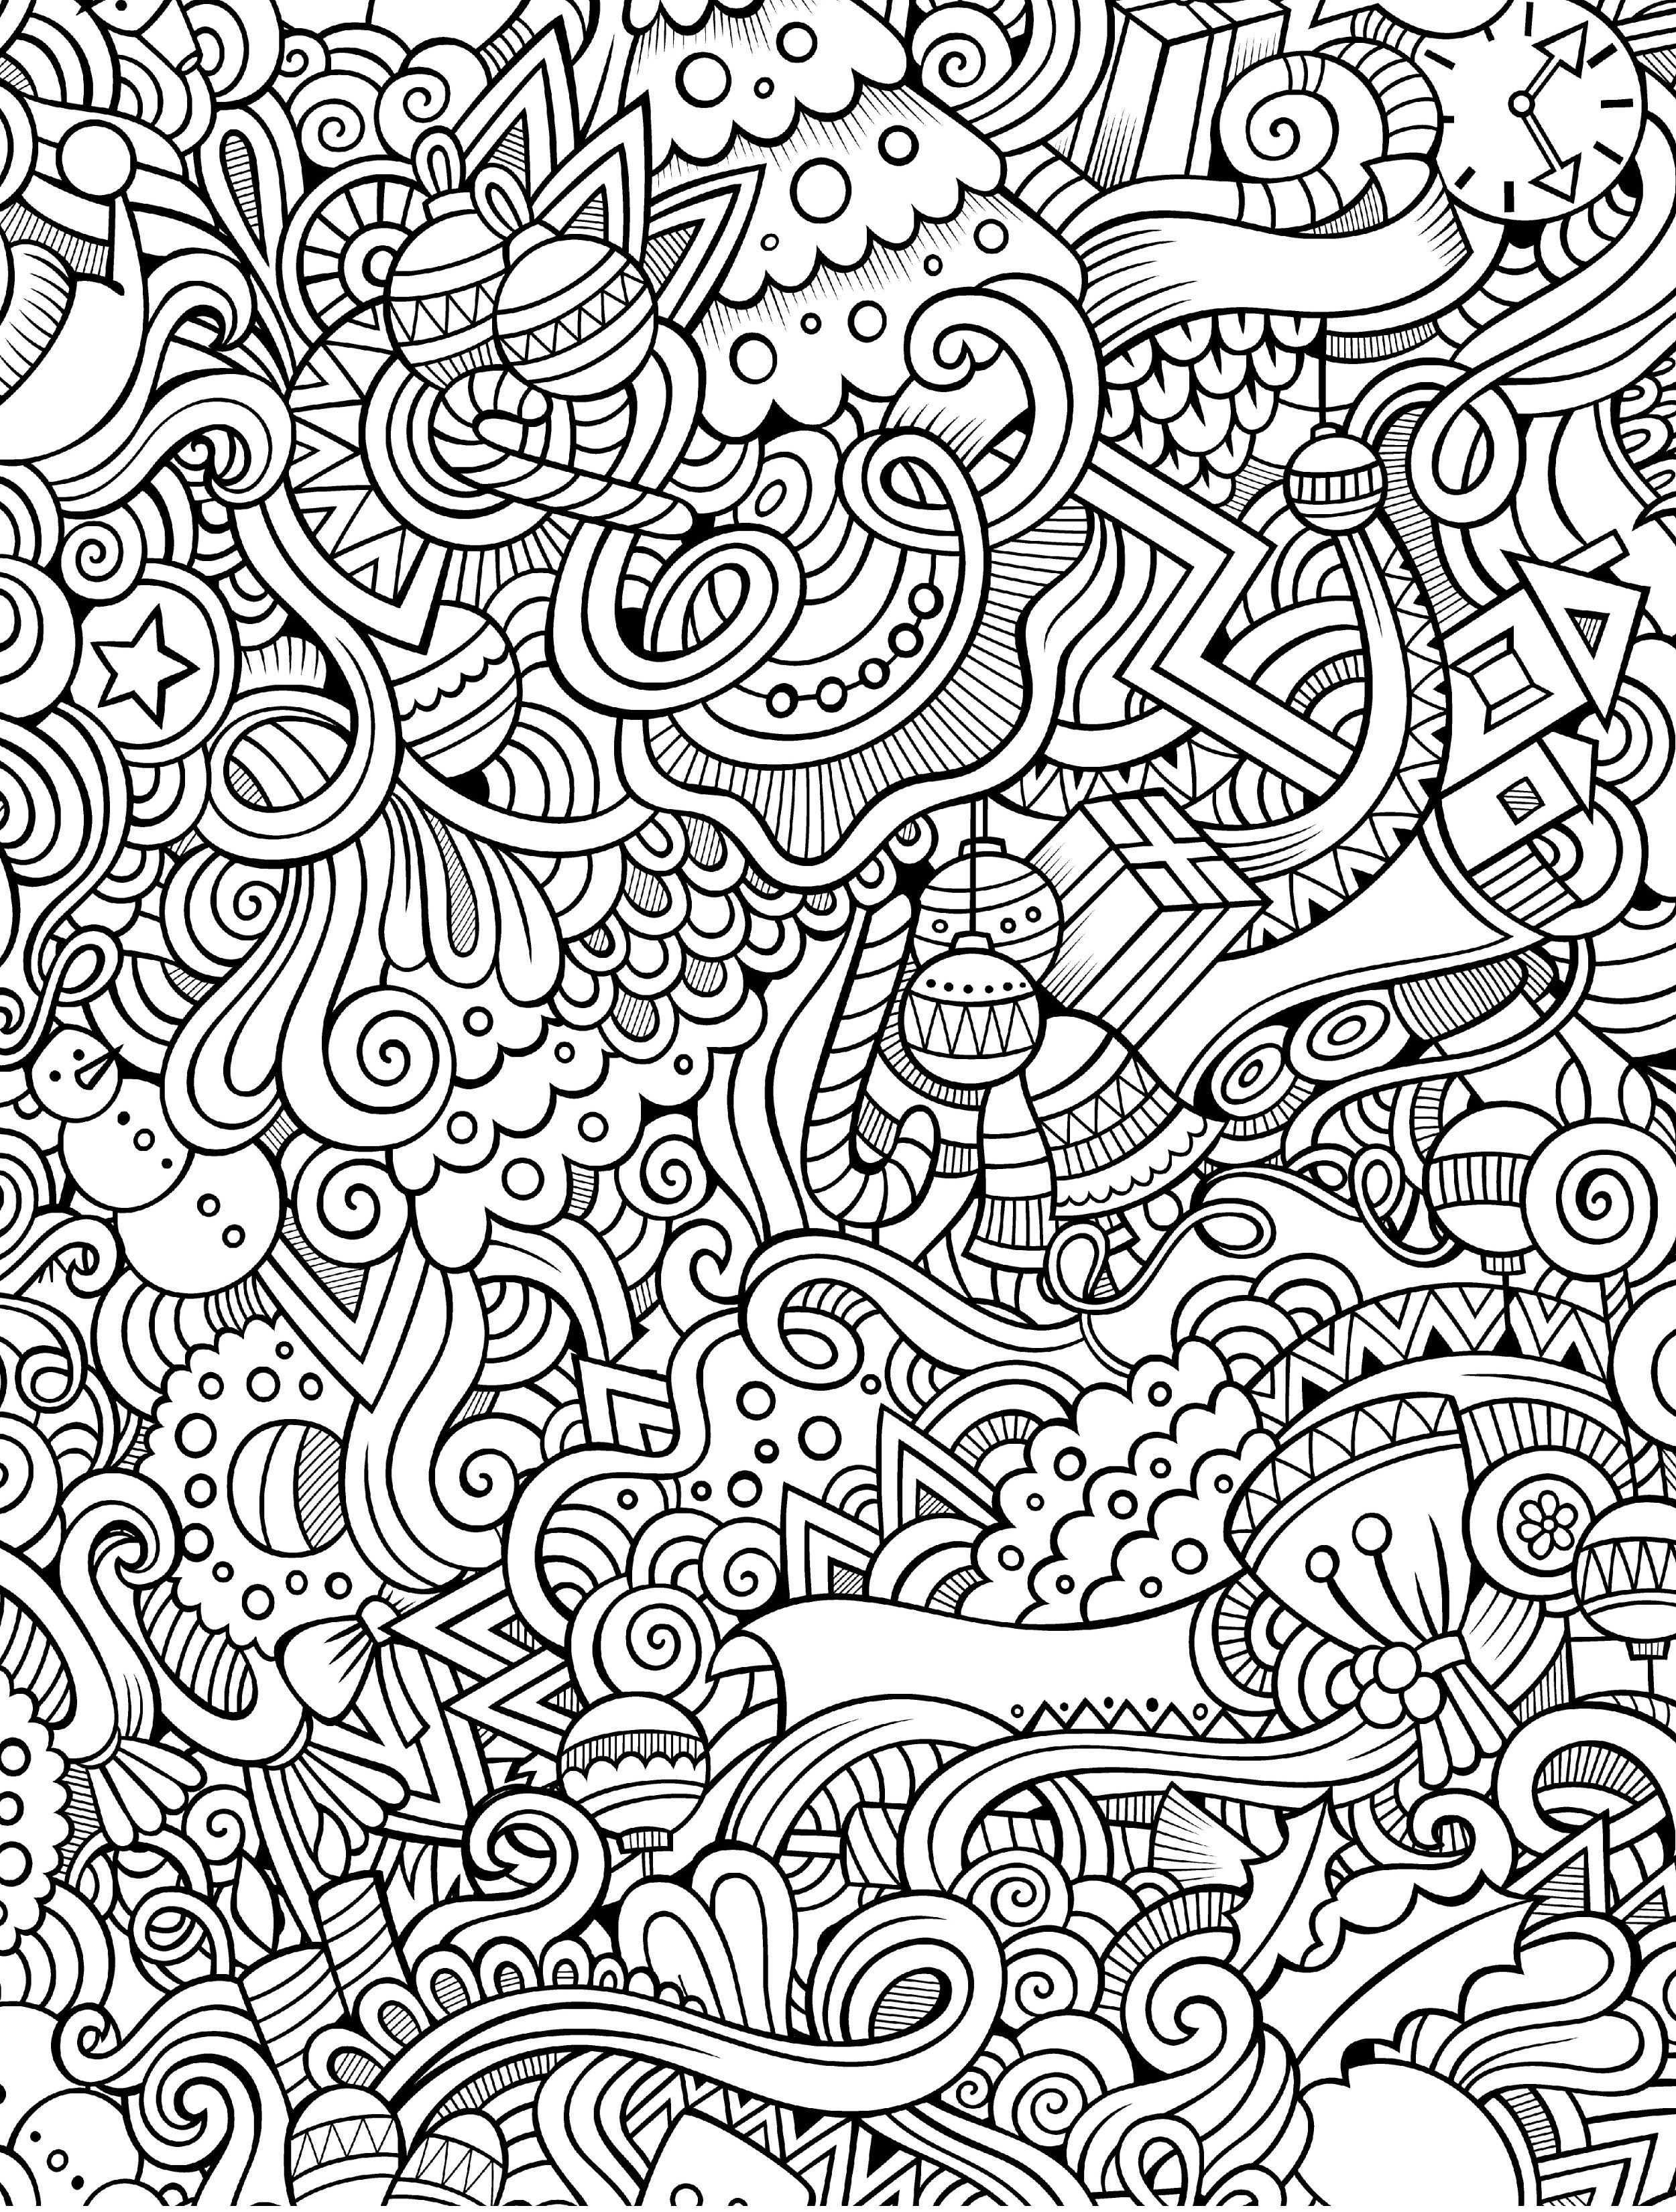 coloring pages greeting cards Collection-10 Free Printable Holiday Adult Coloring Pages 5-l